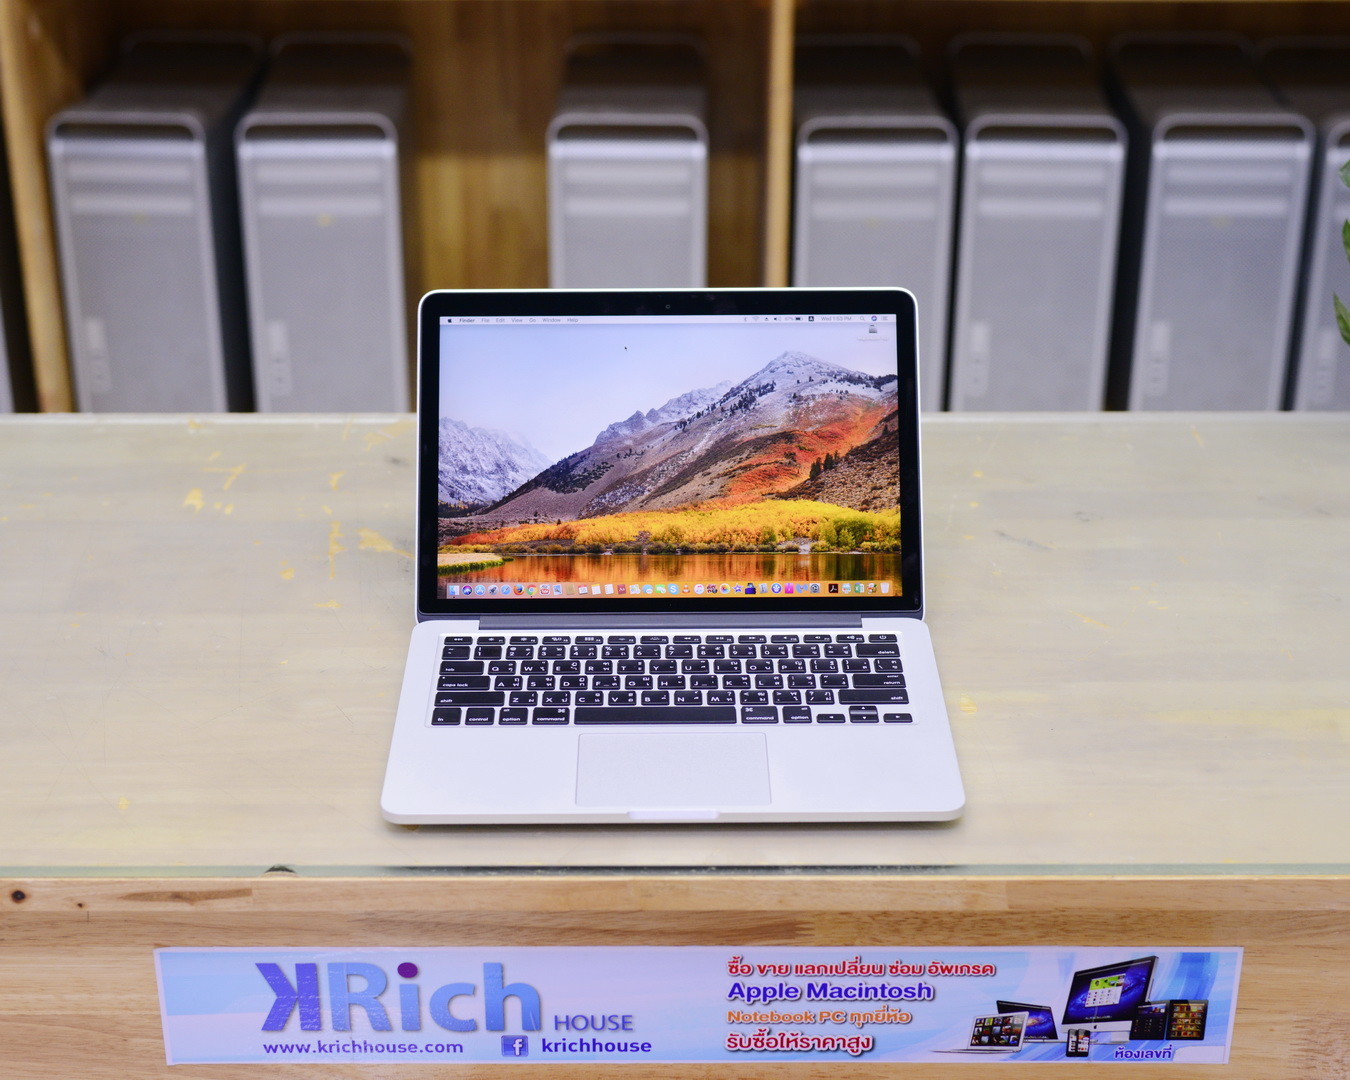 MacBook Pro (Retina 13-inch, Early 2015) - Core i5 2.7GHz RAM 8GB SSD 128GB - New Display